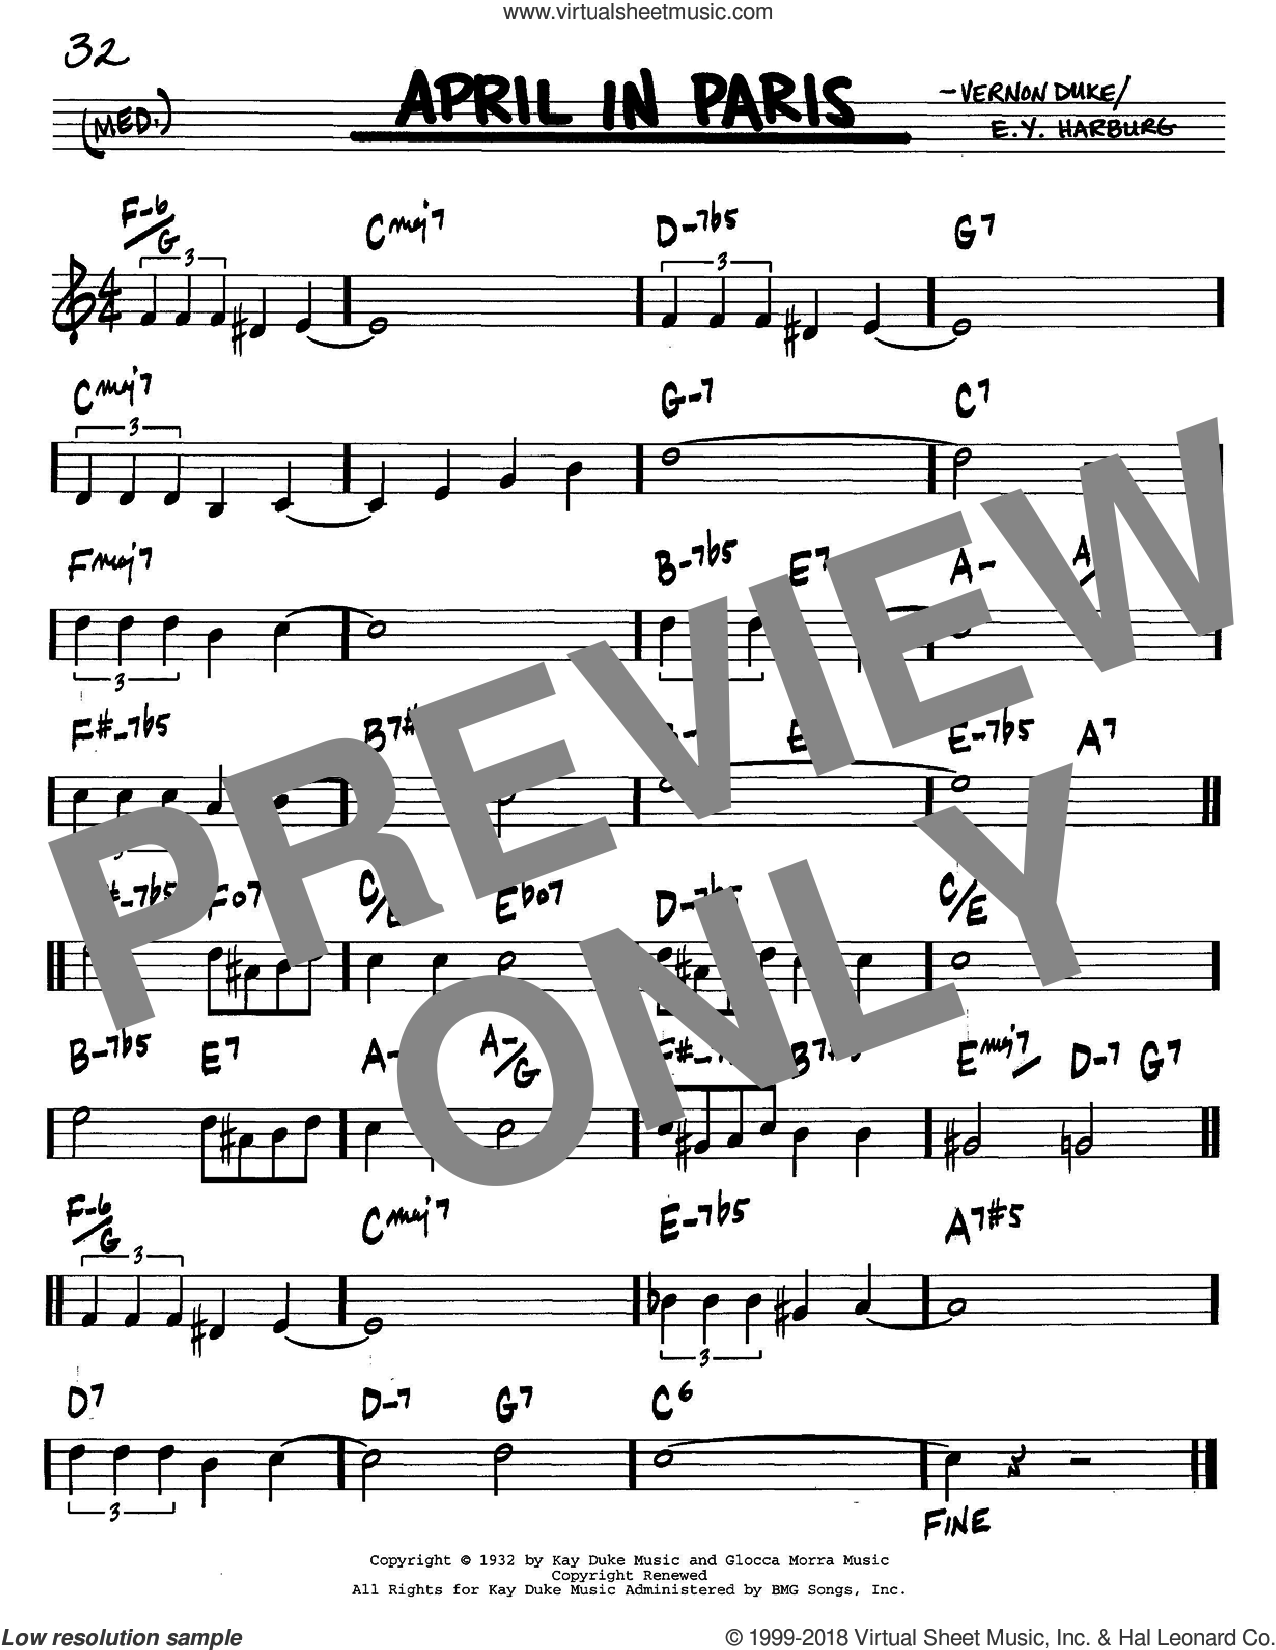 April In Paris sheet music for voice and other instruments (in C) by E.Y. Harburg, Count Basie and Vernon Duke, intermediate skill level